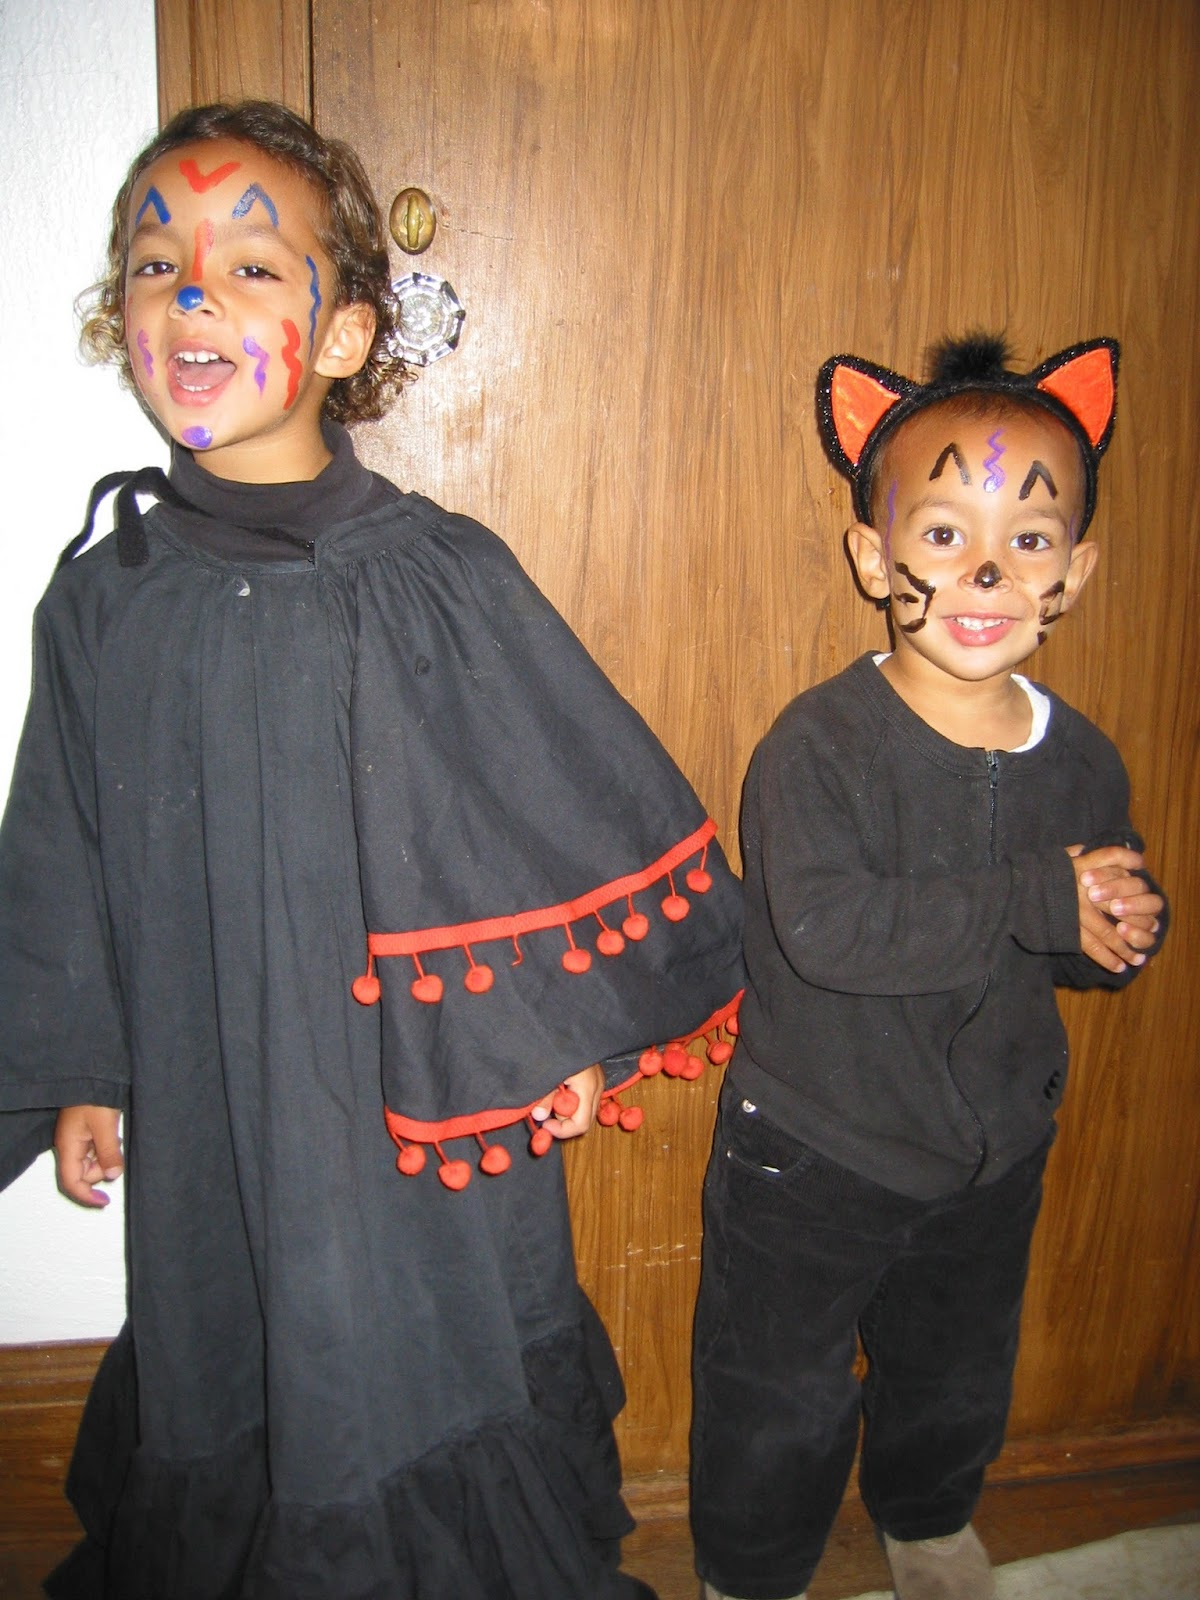 Every year Iu0027ve made the kids costumes for Halloween - well except for their first Halloween when they were both Crew members on Star Trek.  sc 1 st  A Sojourning Life & A Sojourning Life: Making Halloween Costumes